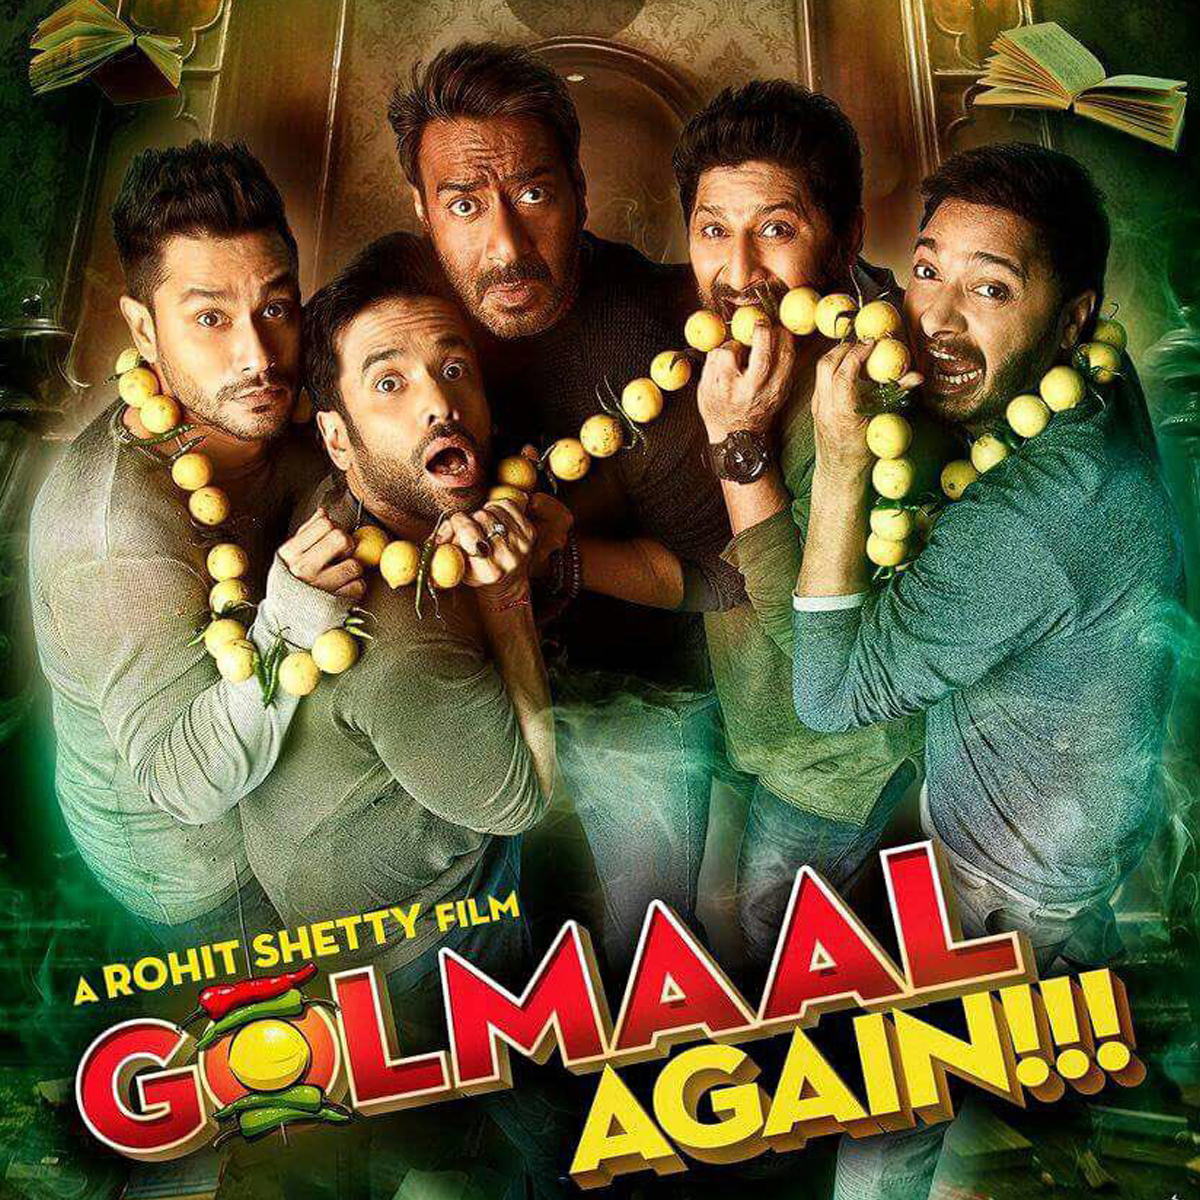 golmaal again movie hd wallpapers download free 1080p